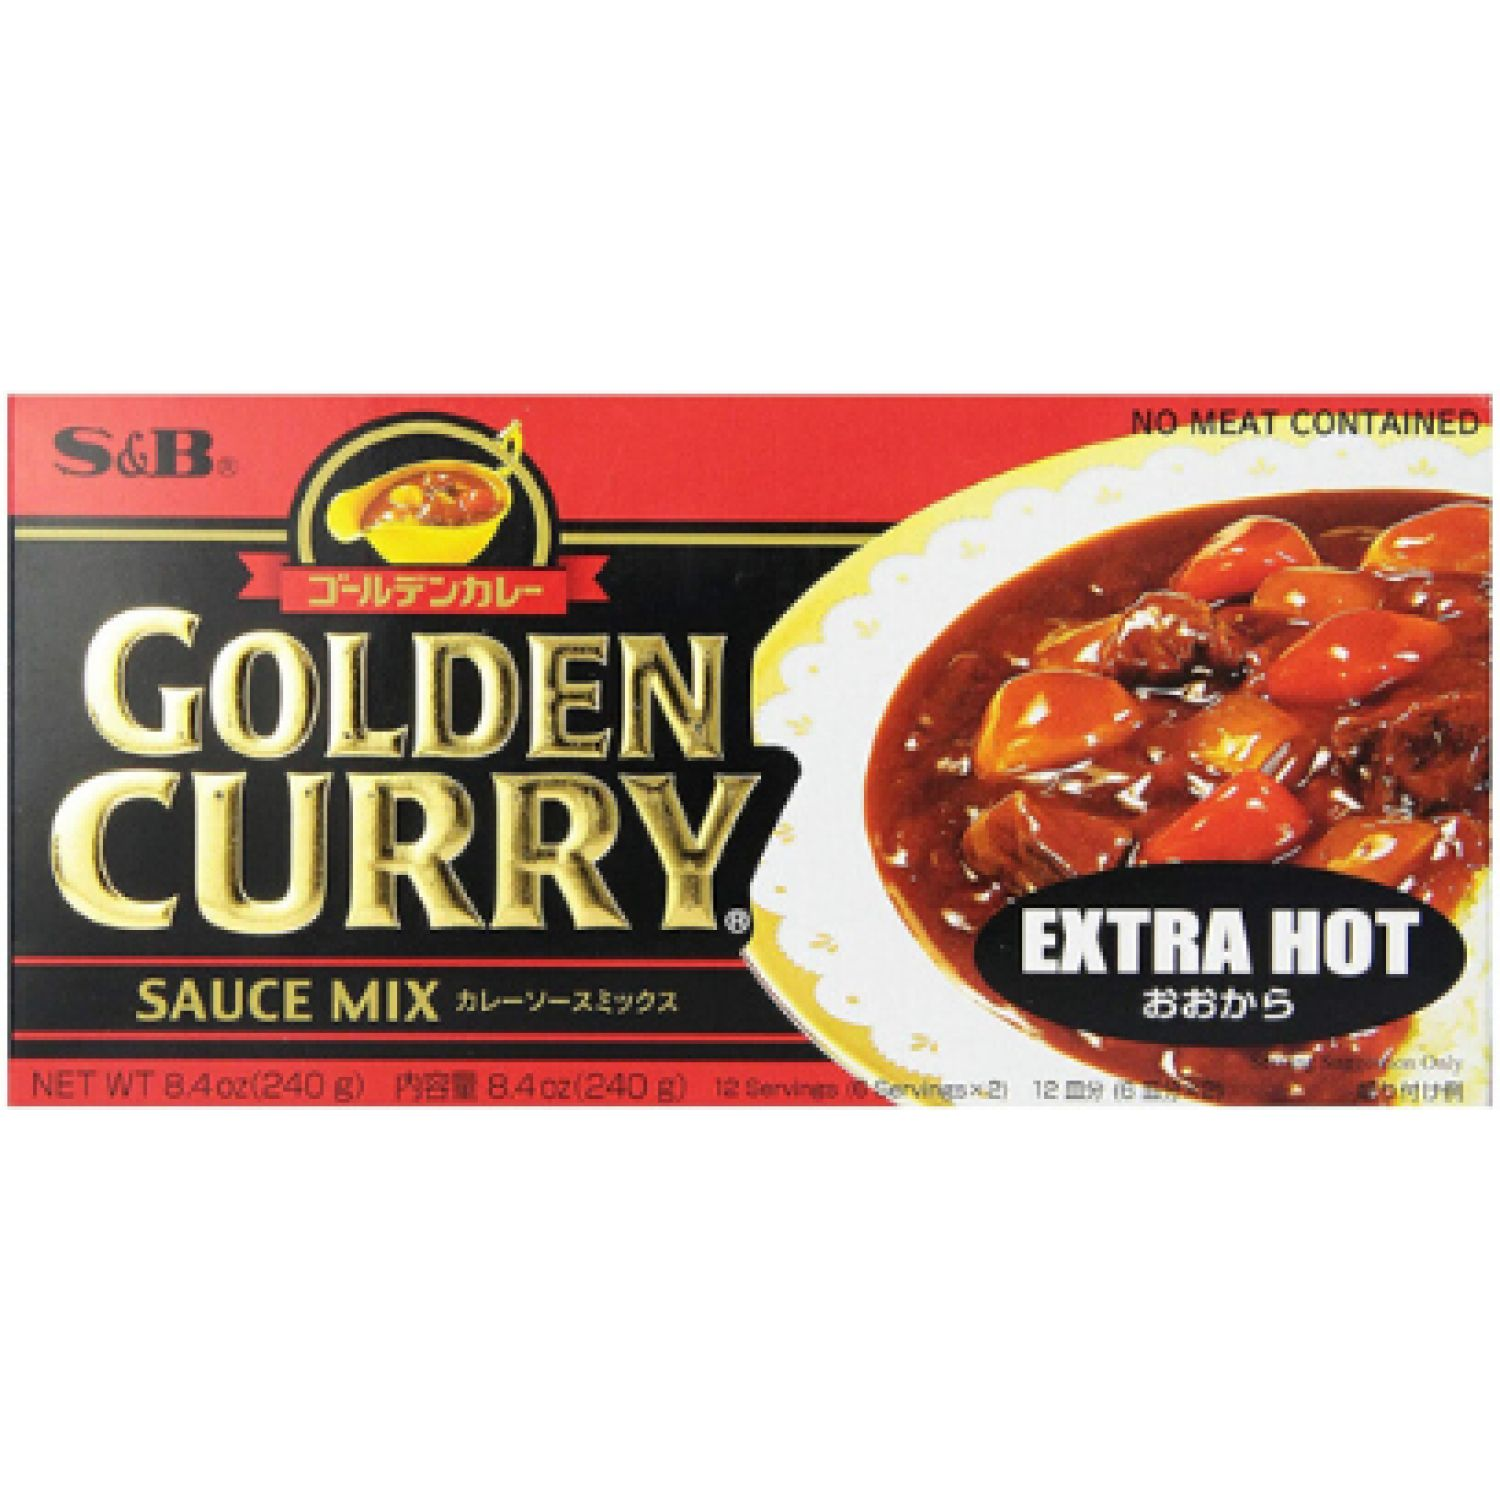 S&B S&b Jumbo Extra Hot Curry 7.8 Oz.(219.9 Gr.) SIN COLOR Salsa de curry